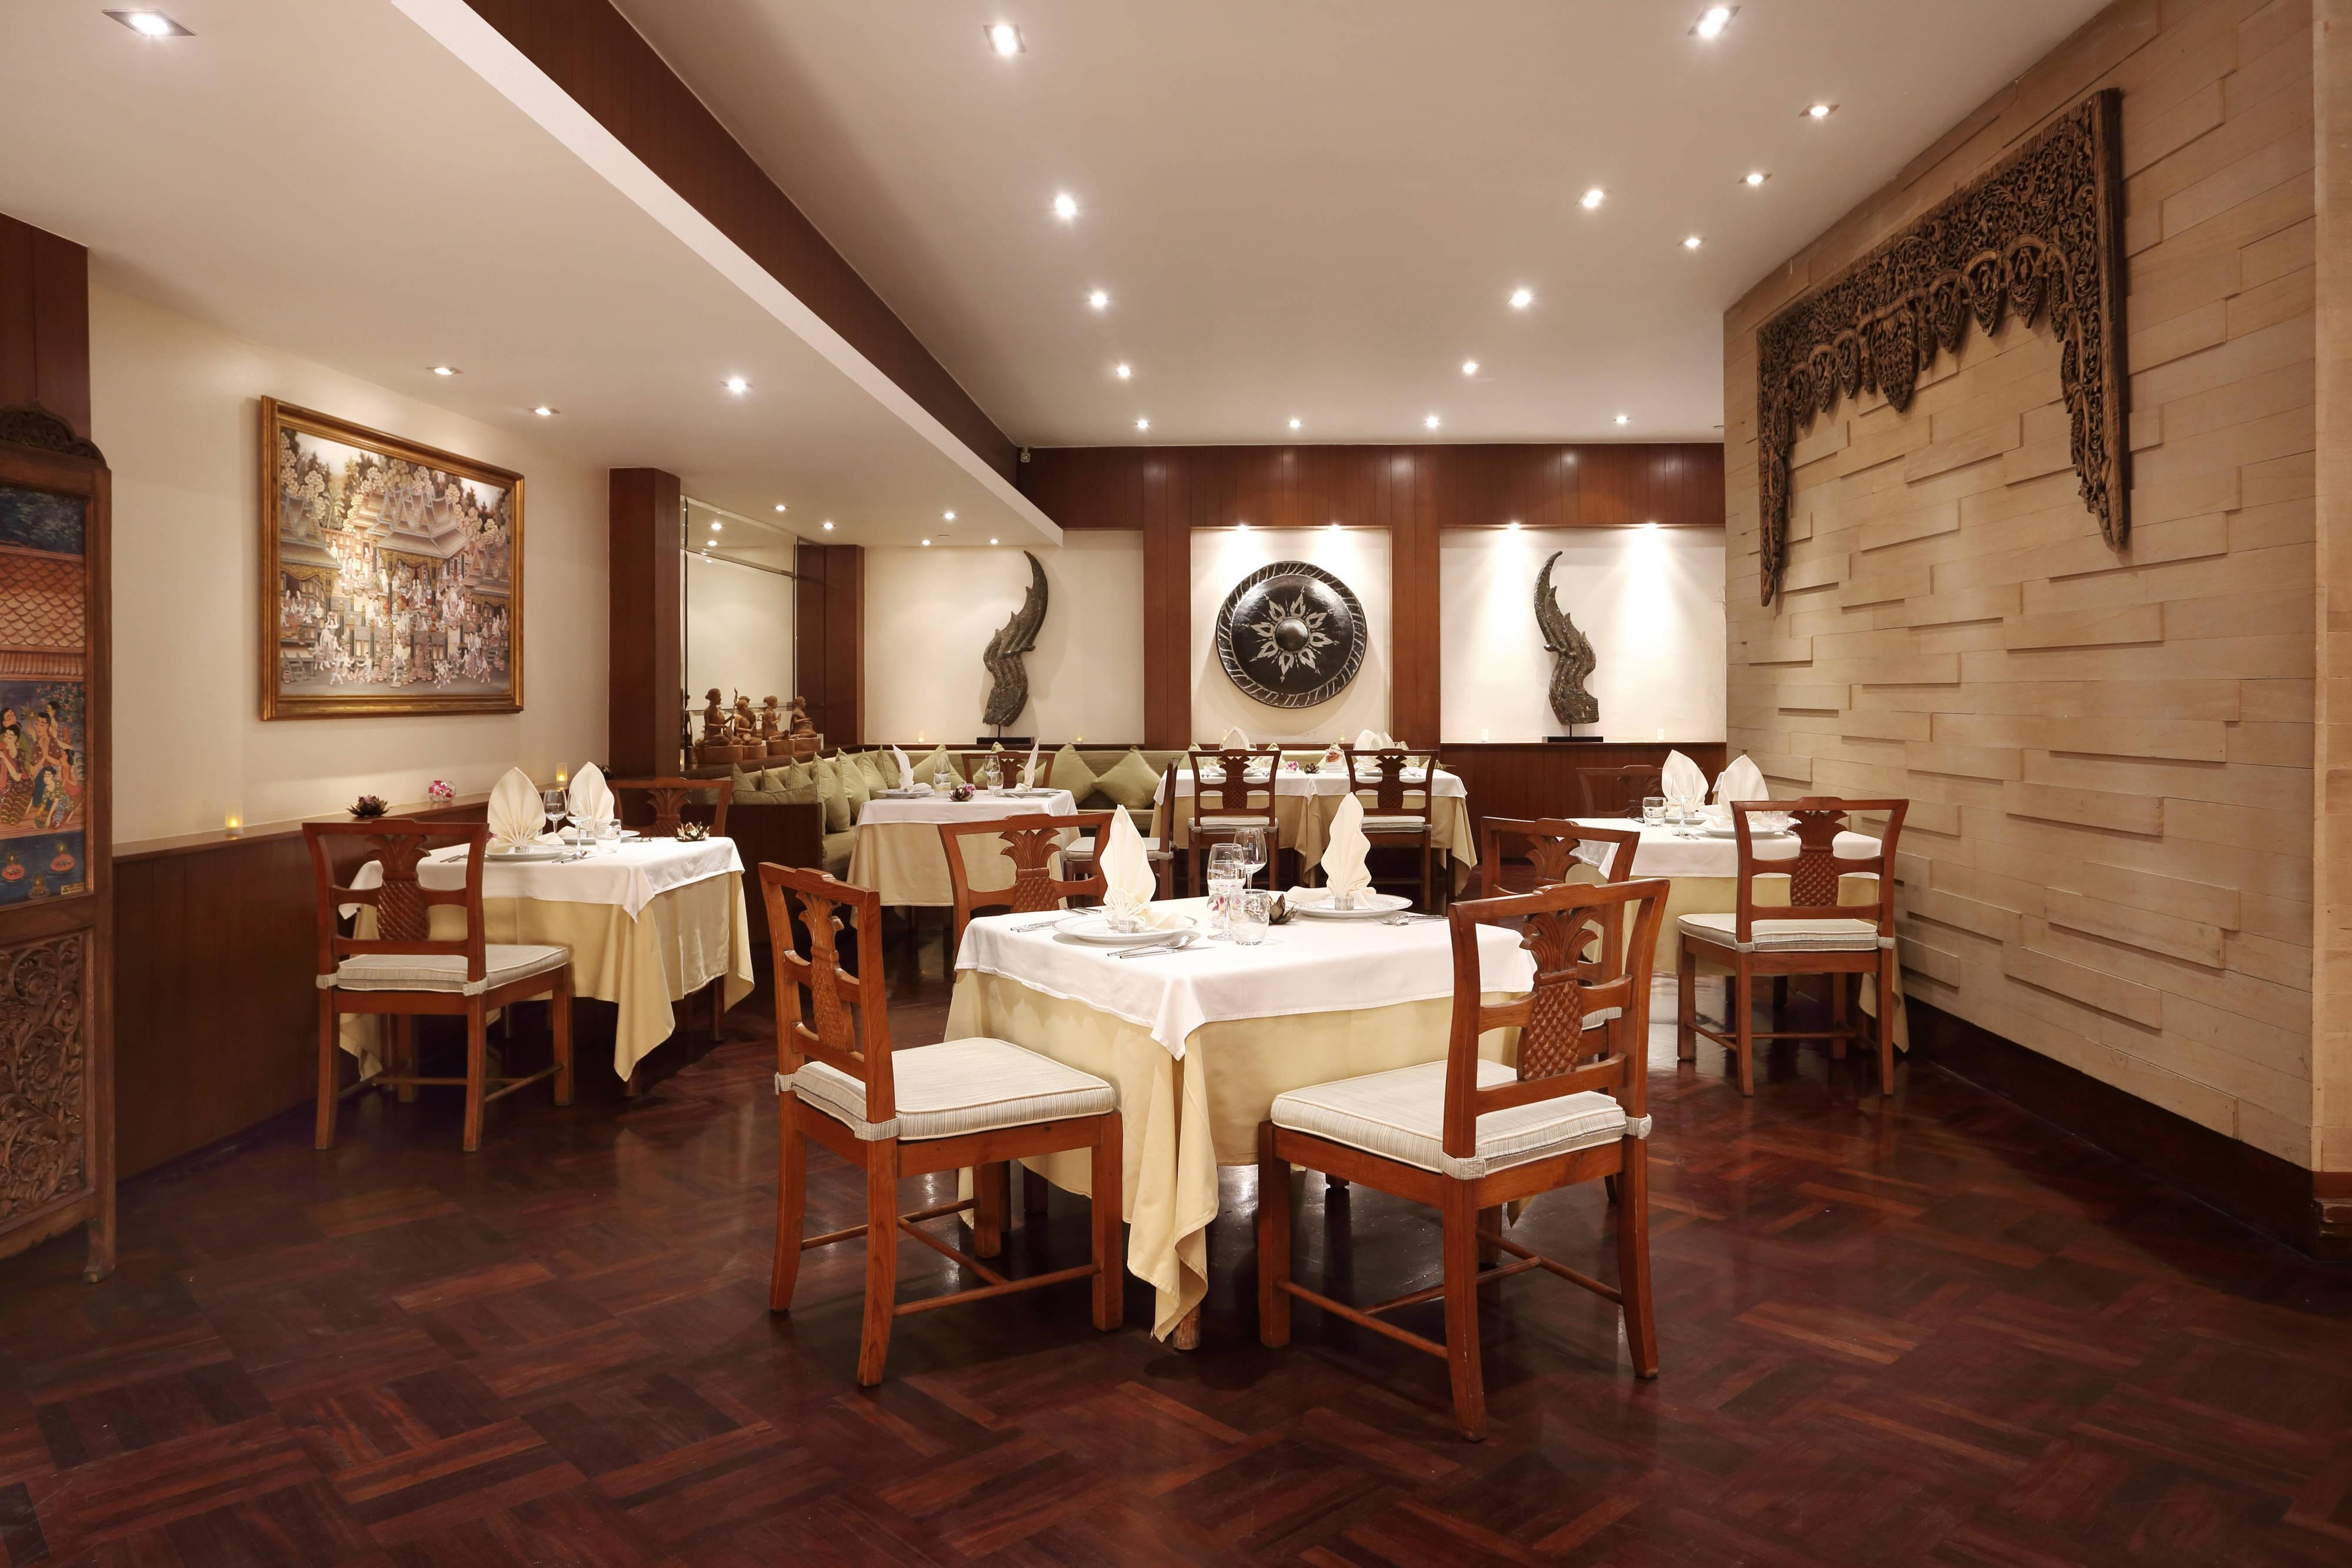 Wang Warin Thai Restaurant Interior